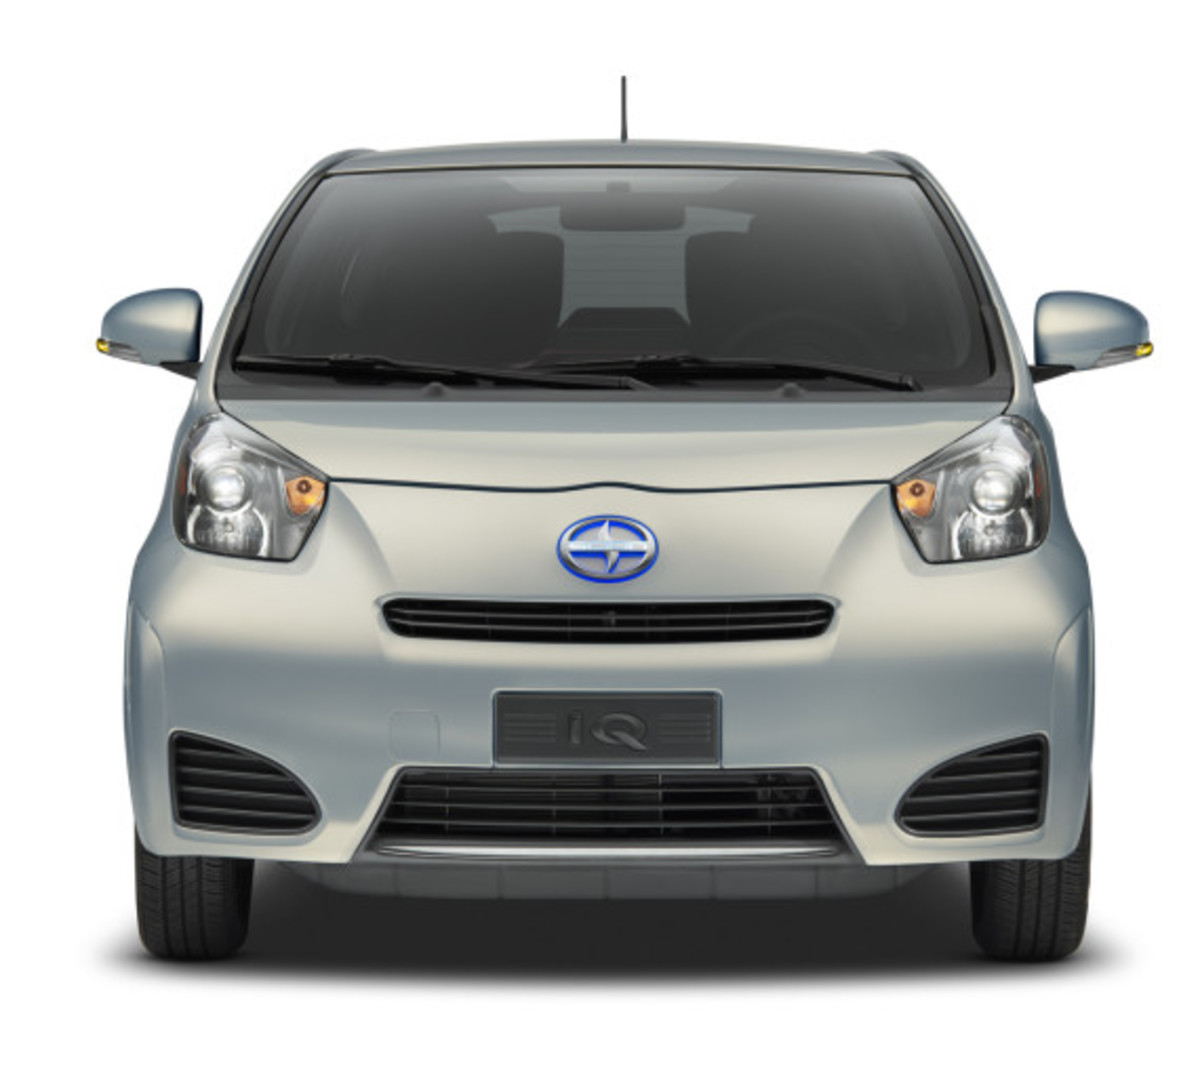 scion-10th-anniversary-special-edition-models-26